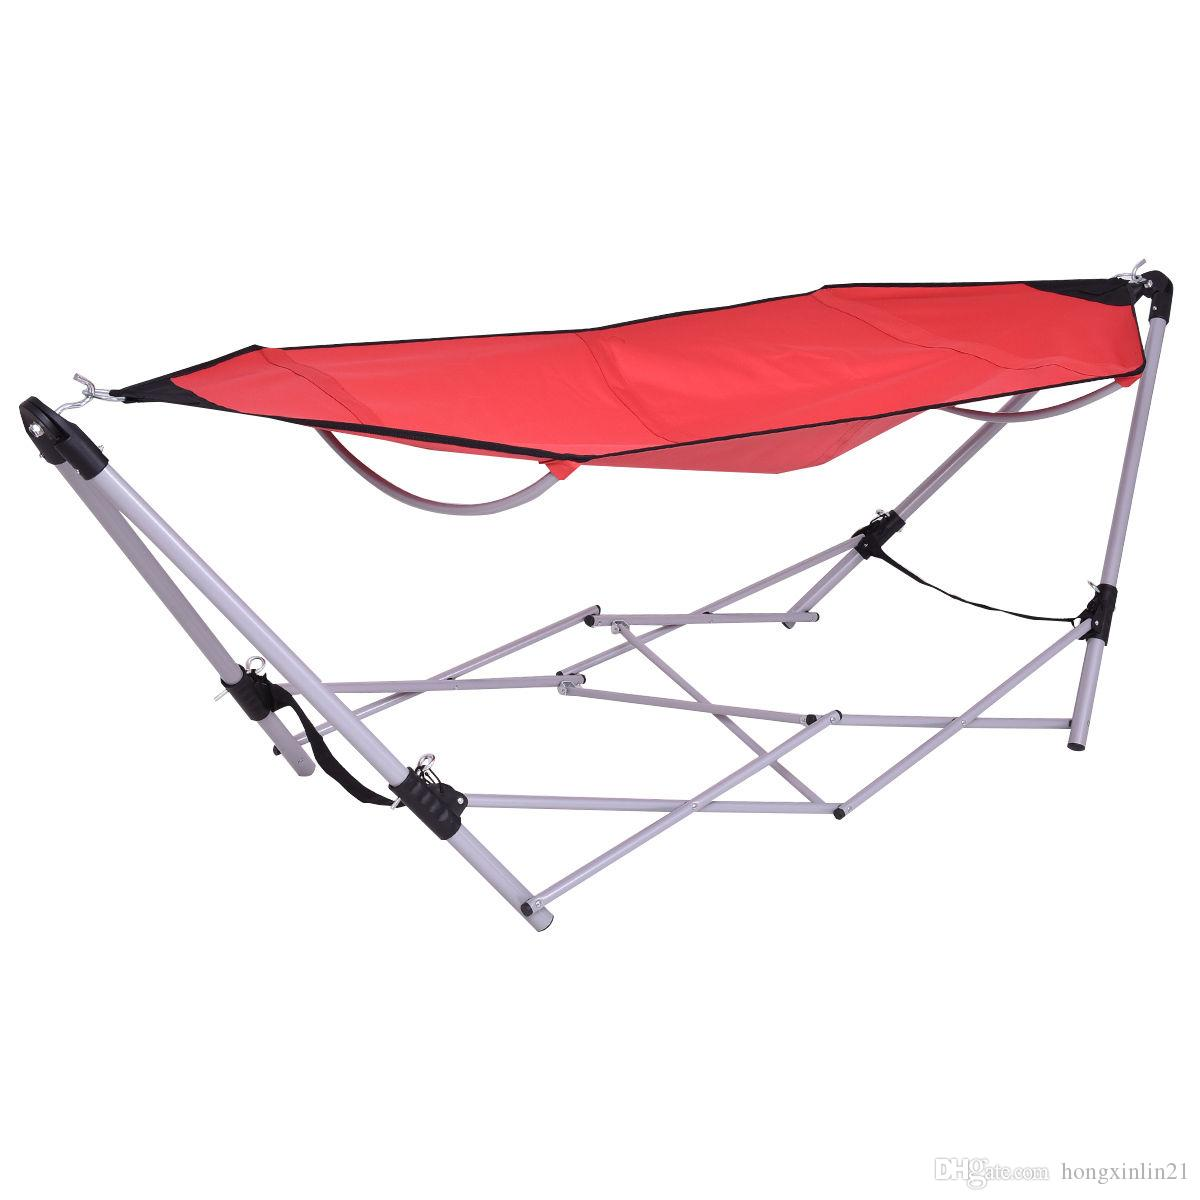 Red Portable Folding Hammock Lounge Camping Bed Steel Frame Stand W